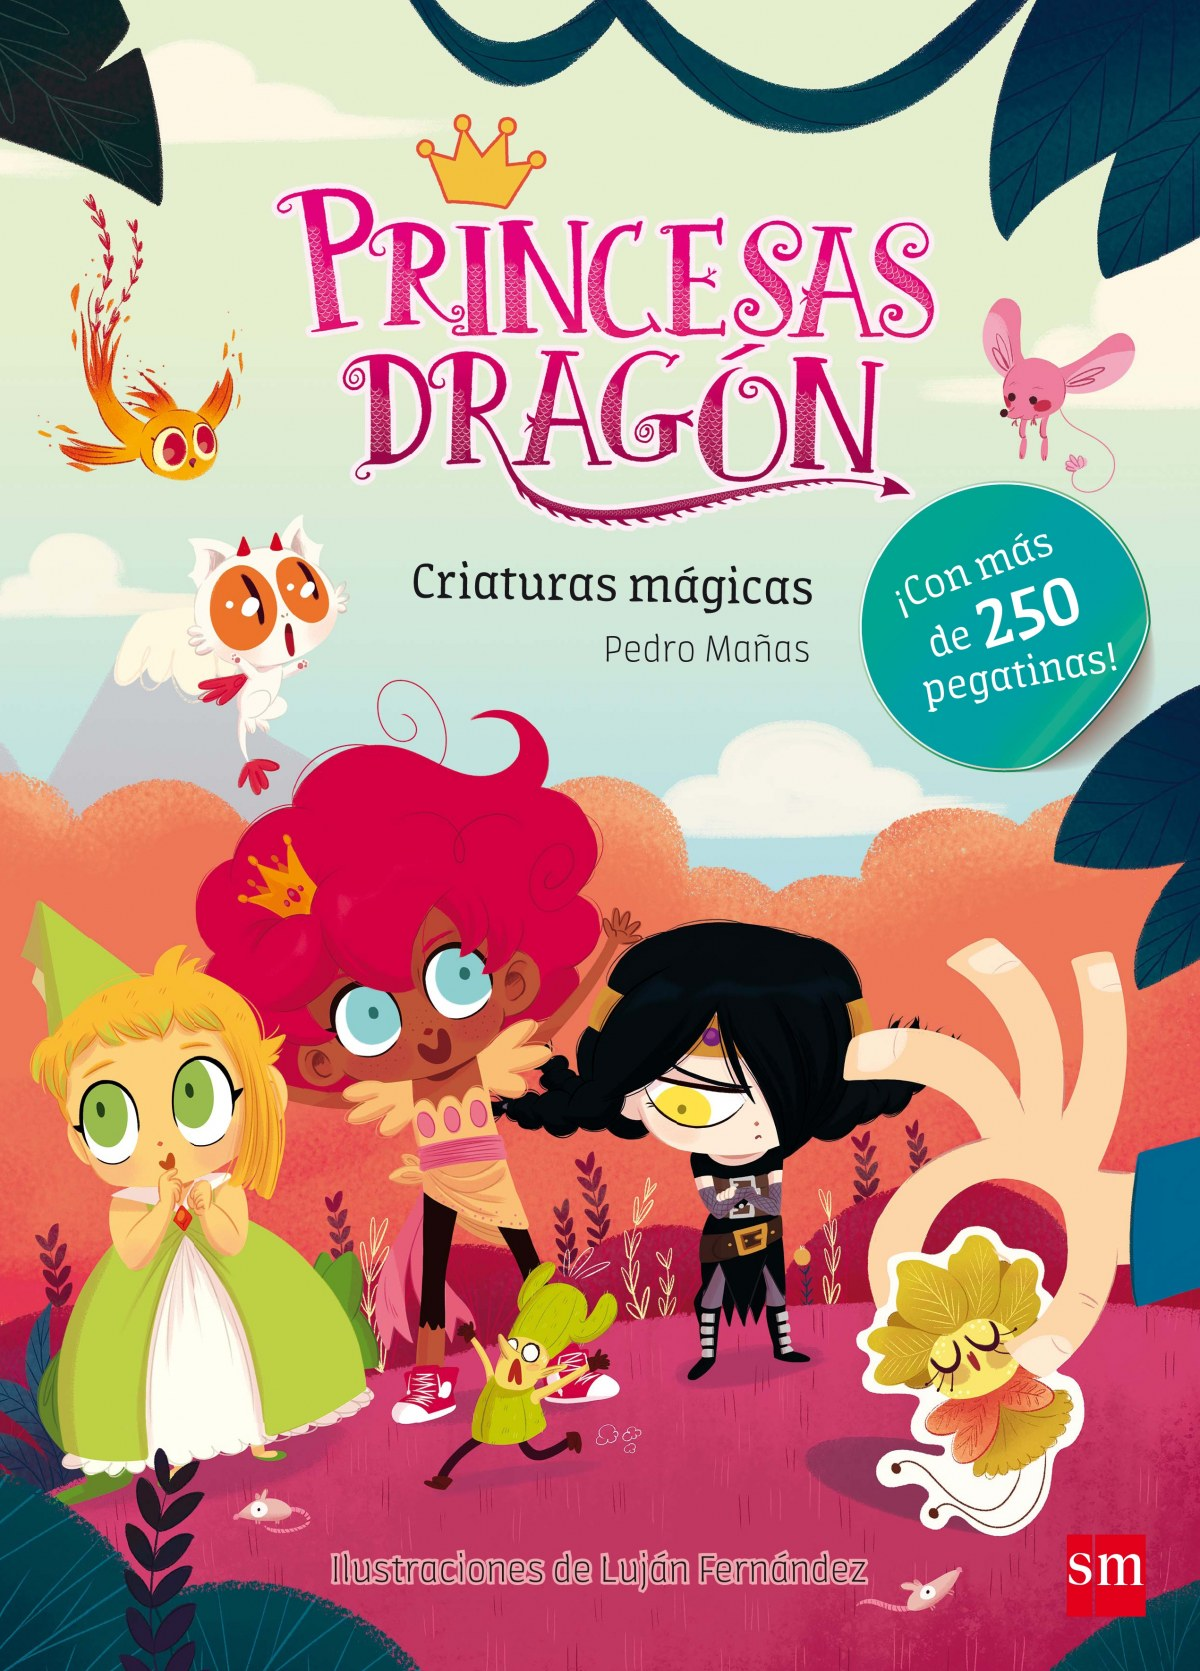 PRINCESAS DRAGON CRIATURAS MAGICAS